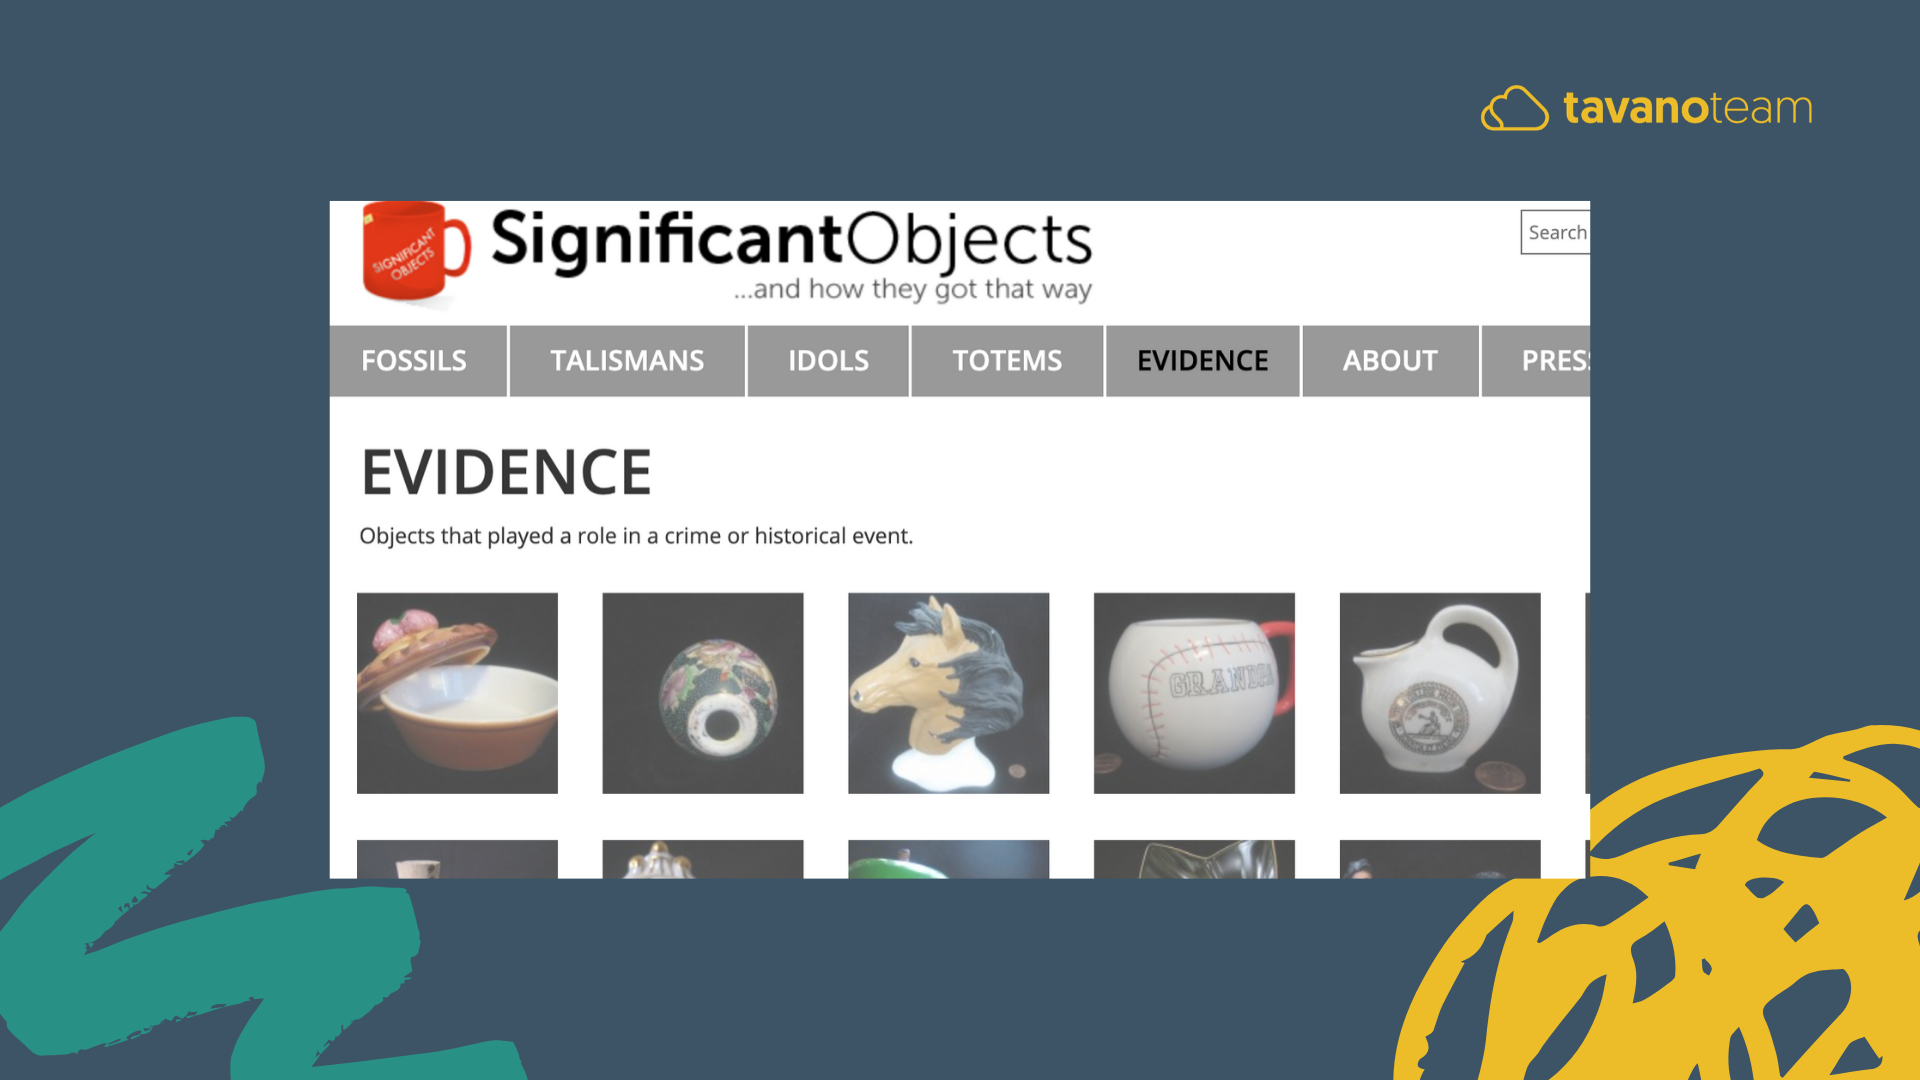 storytelling-for-ecommerce-tavano-team-signoficant-objects